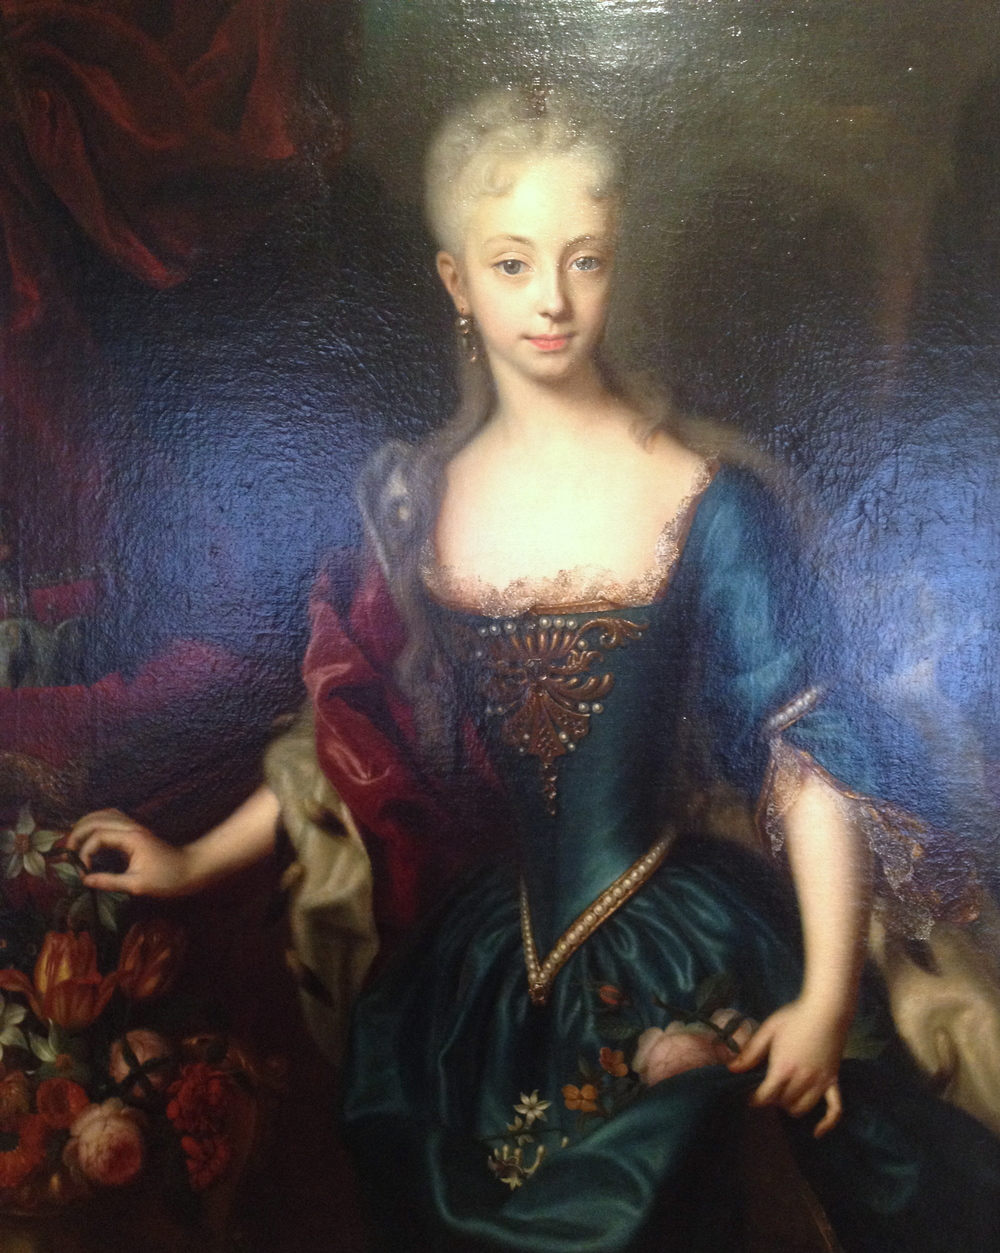 Queen Maria Theresia, when she is younger - painted portrait at the Schloss Ambras in Innsbruck